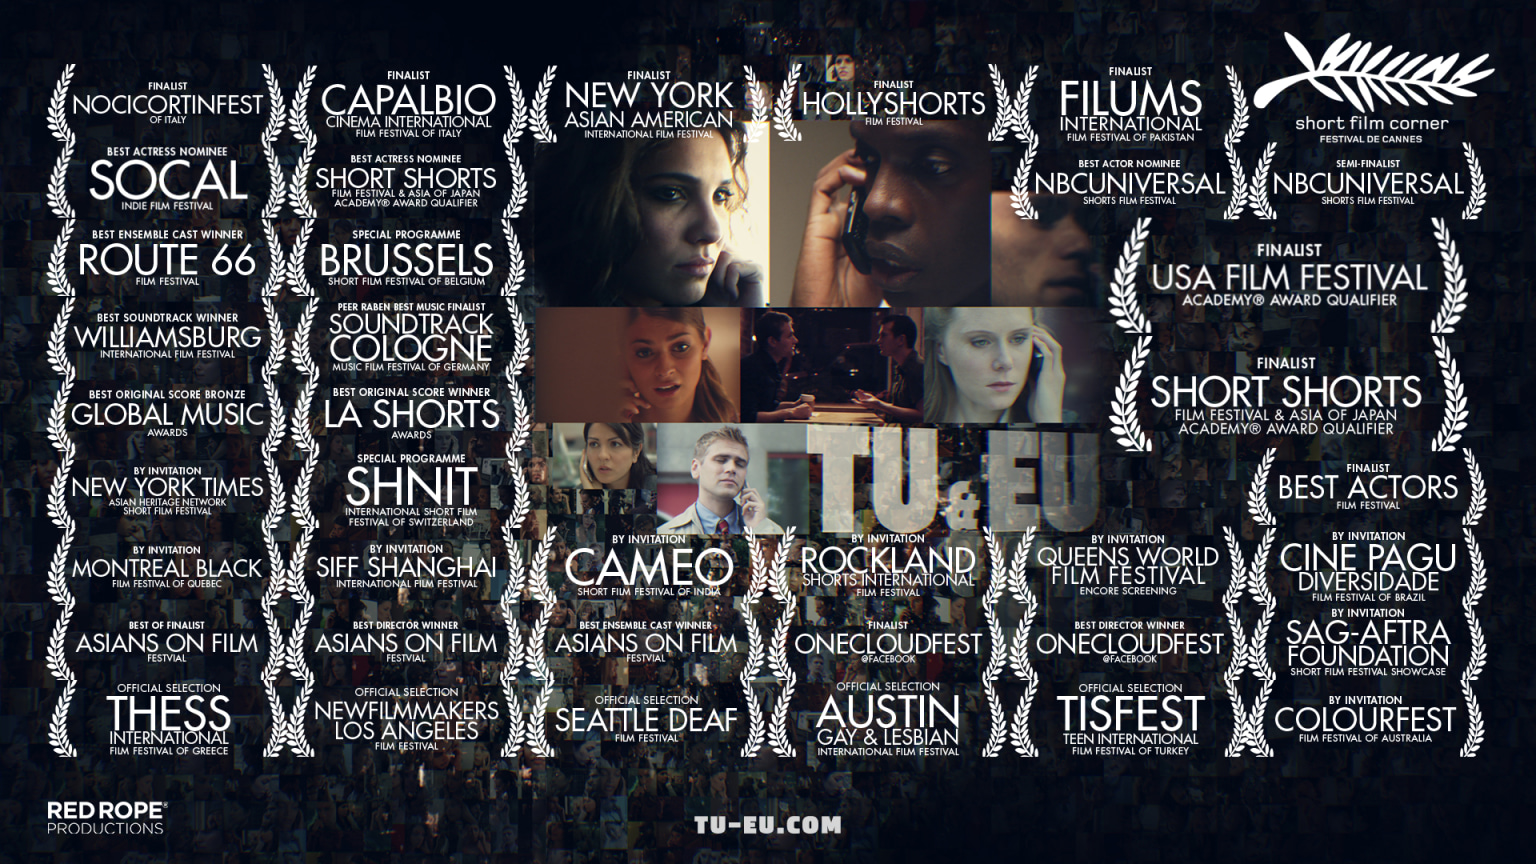 TU & EU (You & Me) Short Film